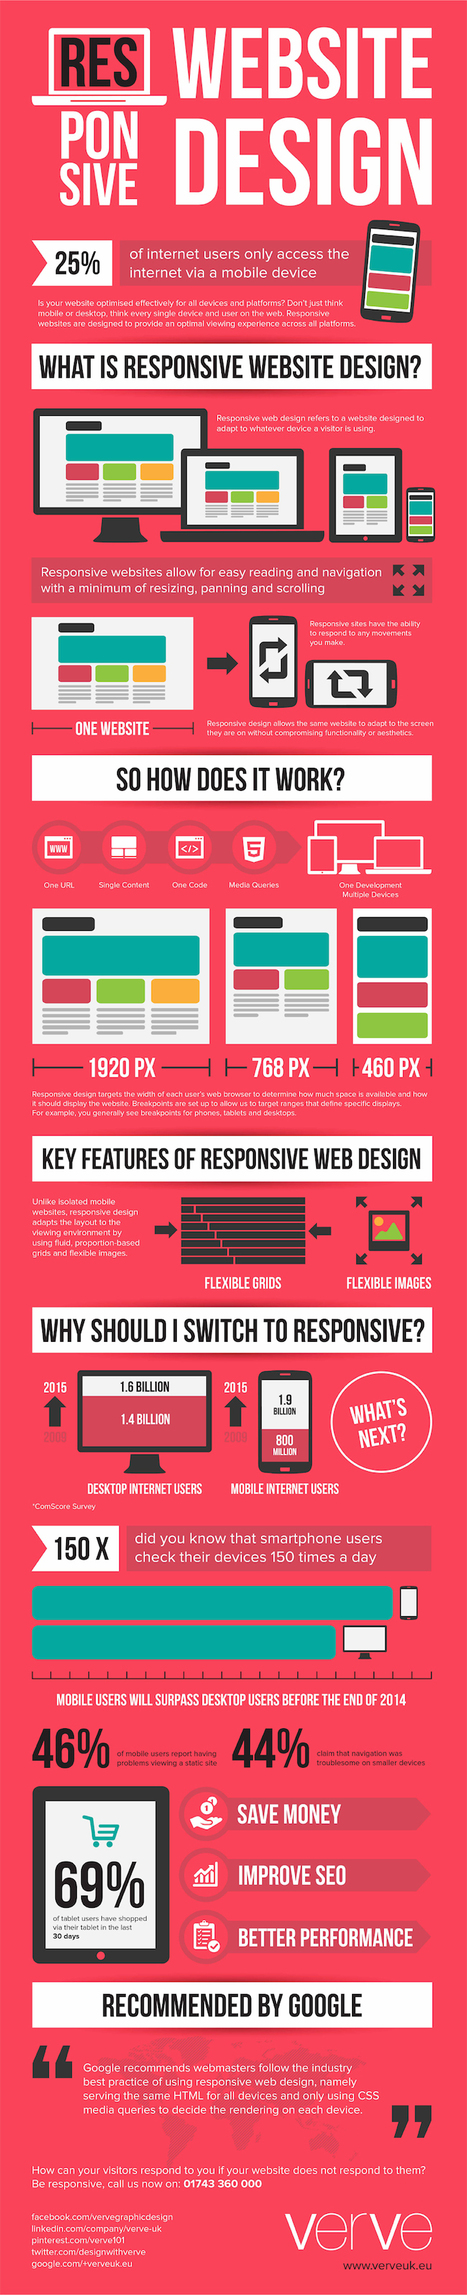 How Responsive Web Design Works [Infographic] | Design Revolution | Scoop.it